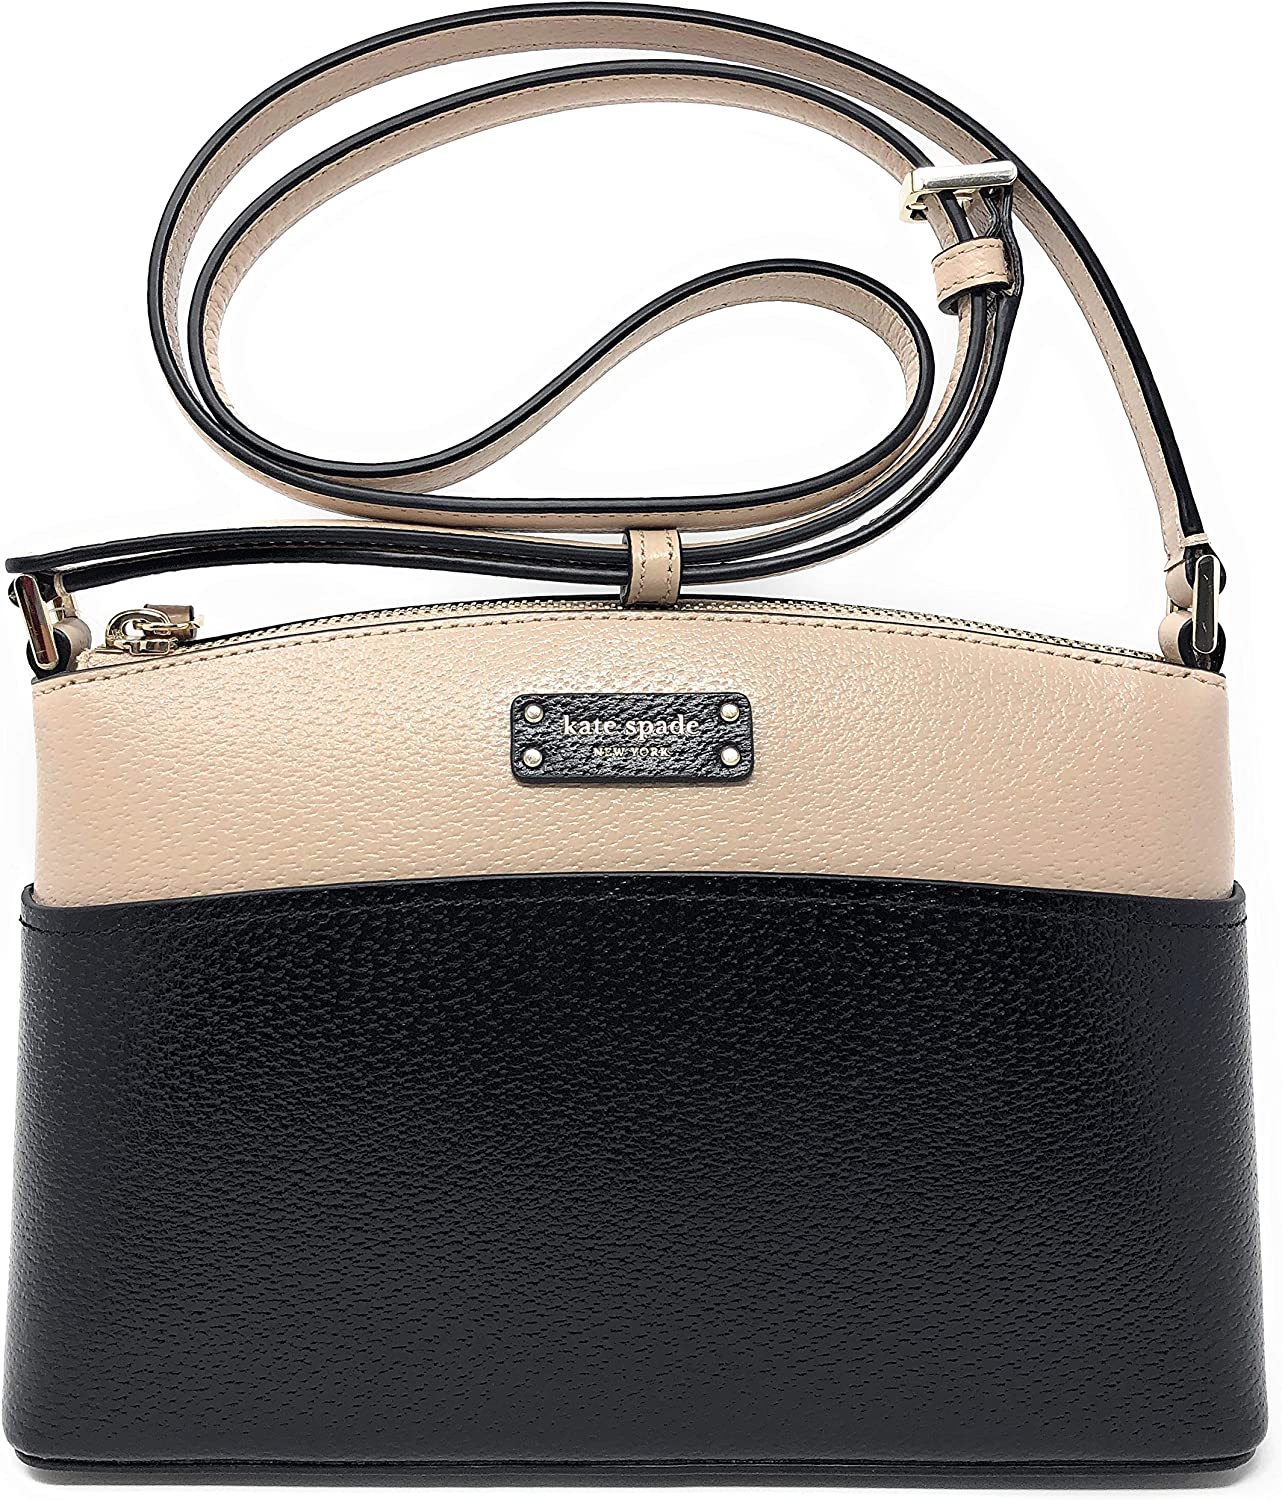 Kate Spade New York Jeanne Crossbody Shoulder Handbag Purse